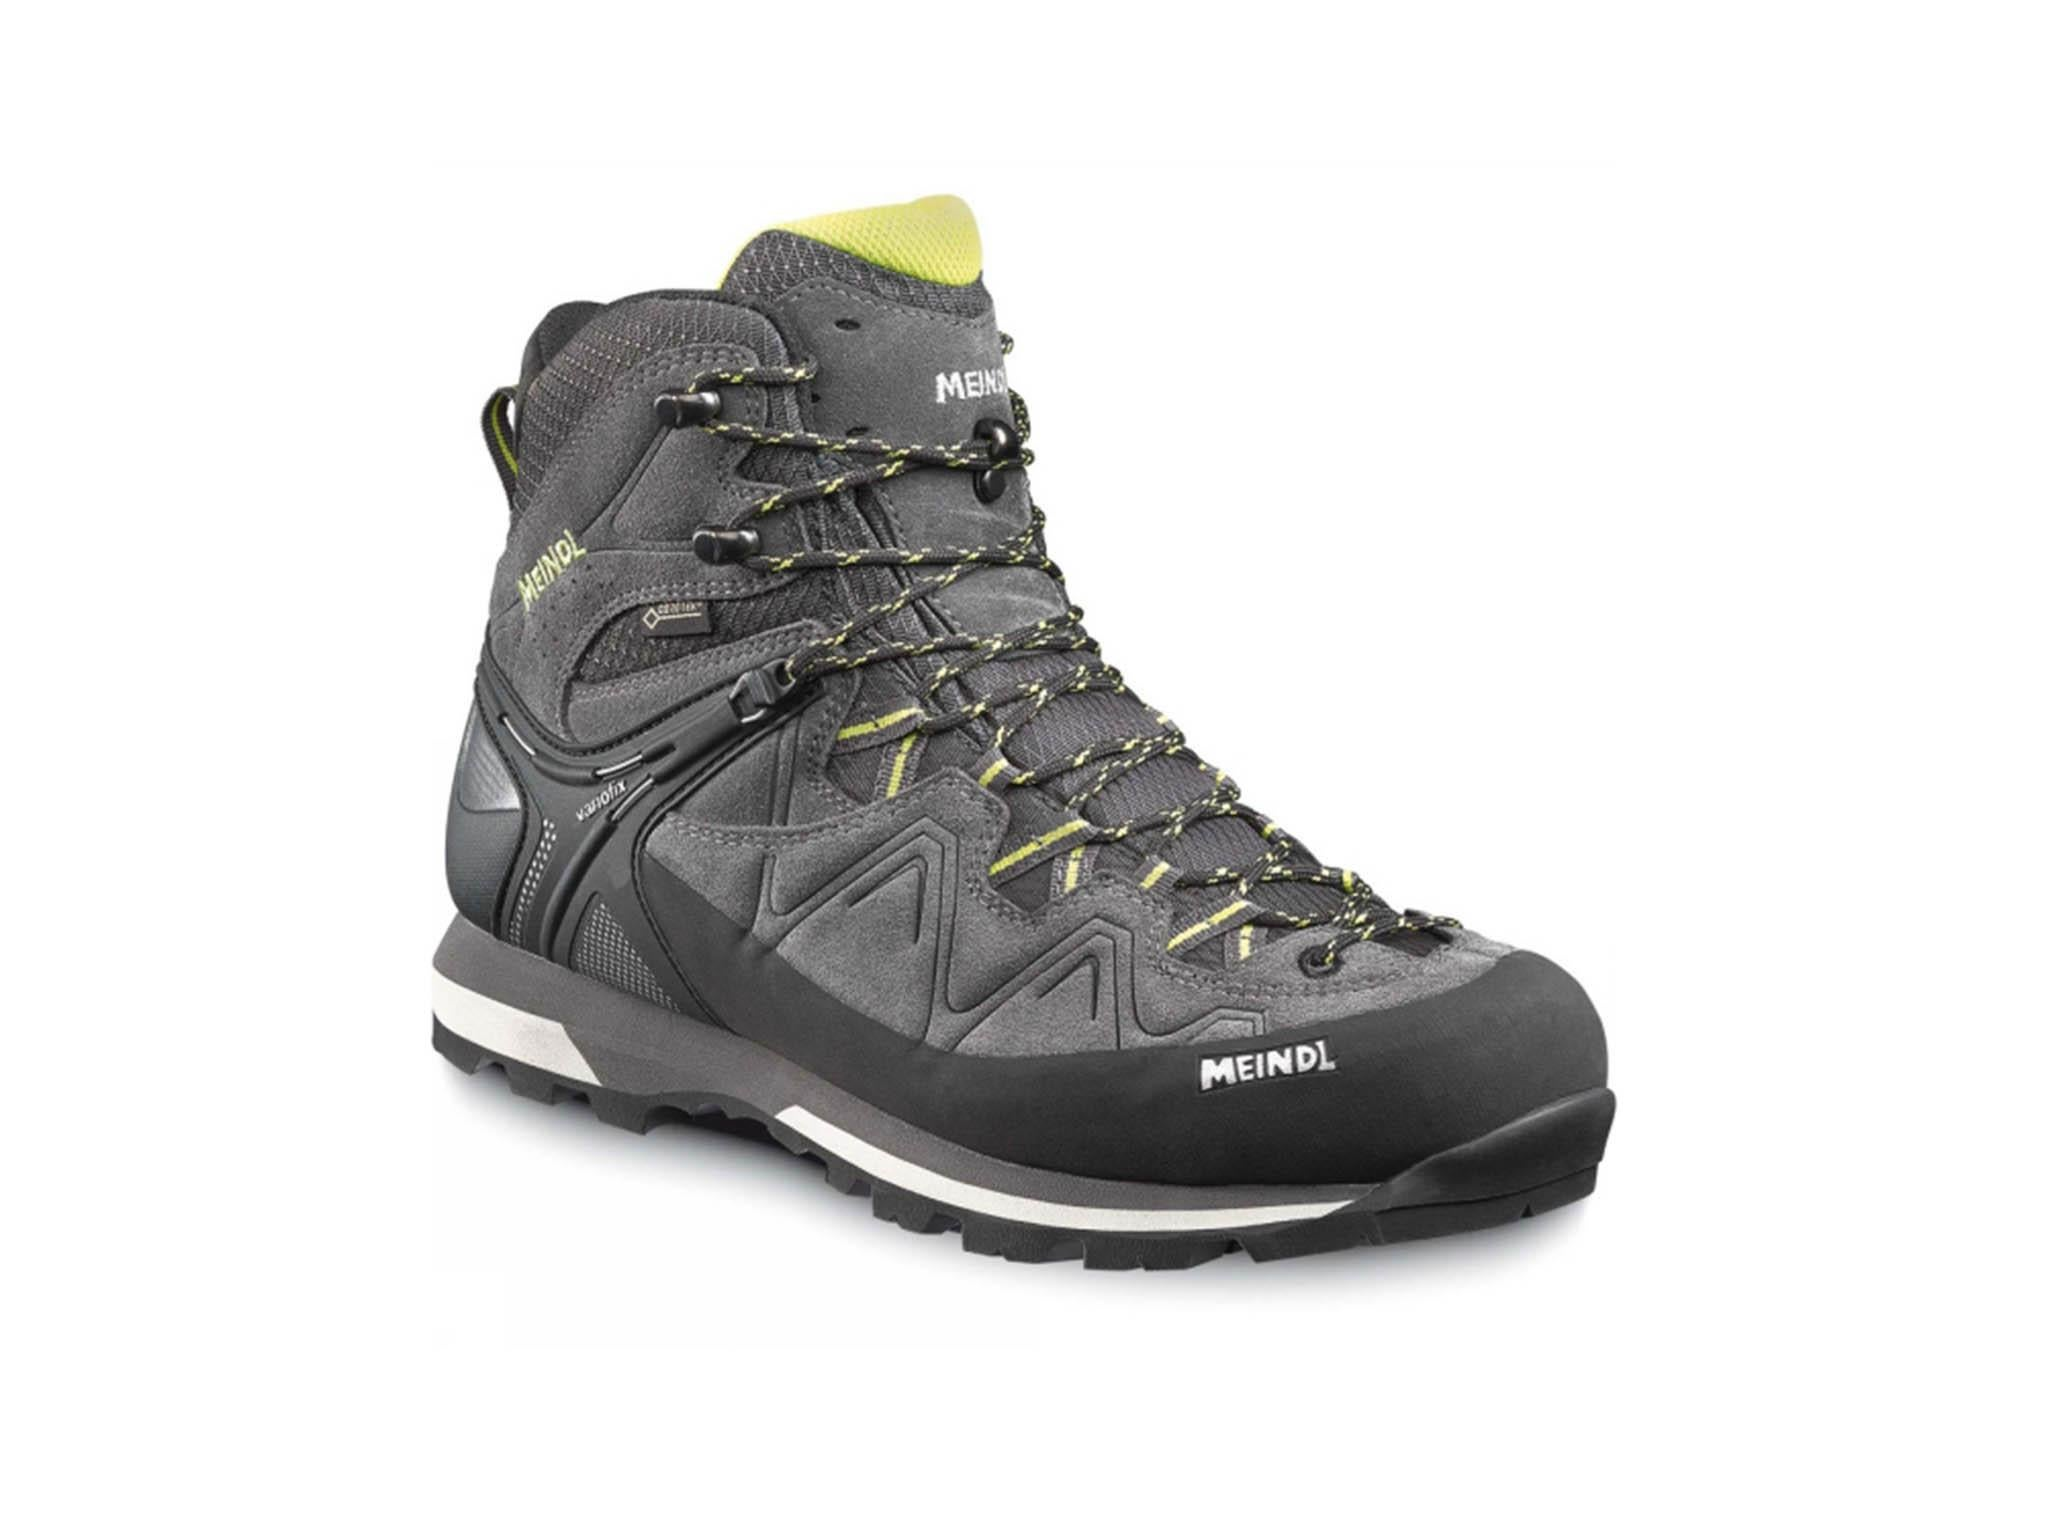 871da626c6a94 Best men's hiking boots and shoes